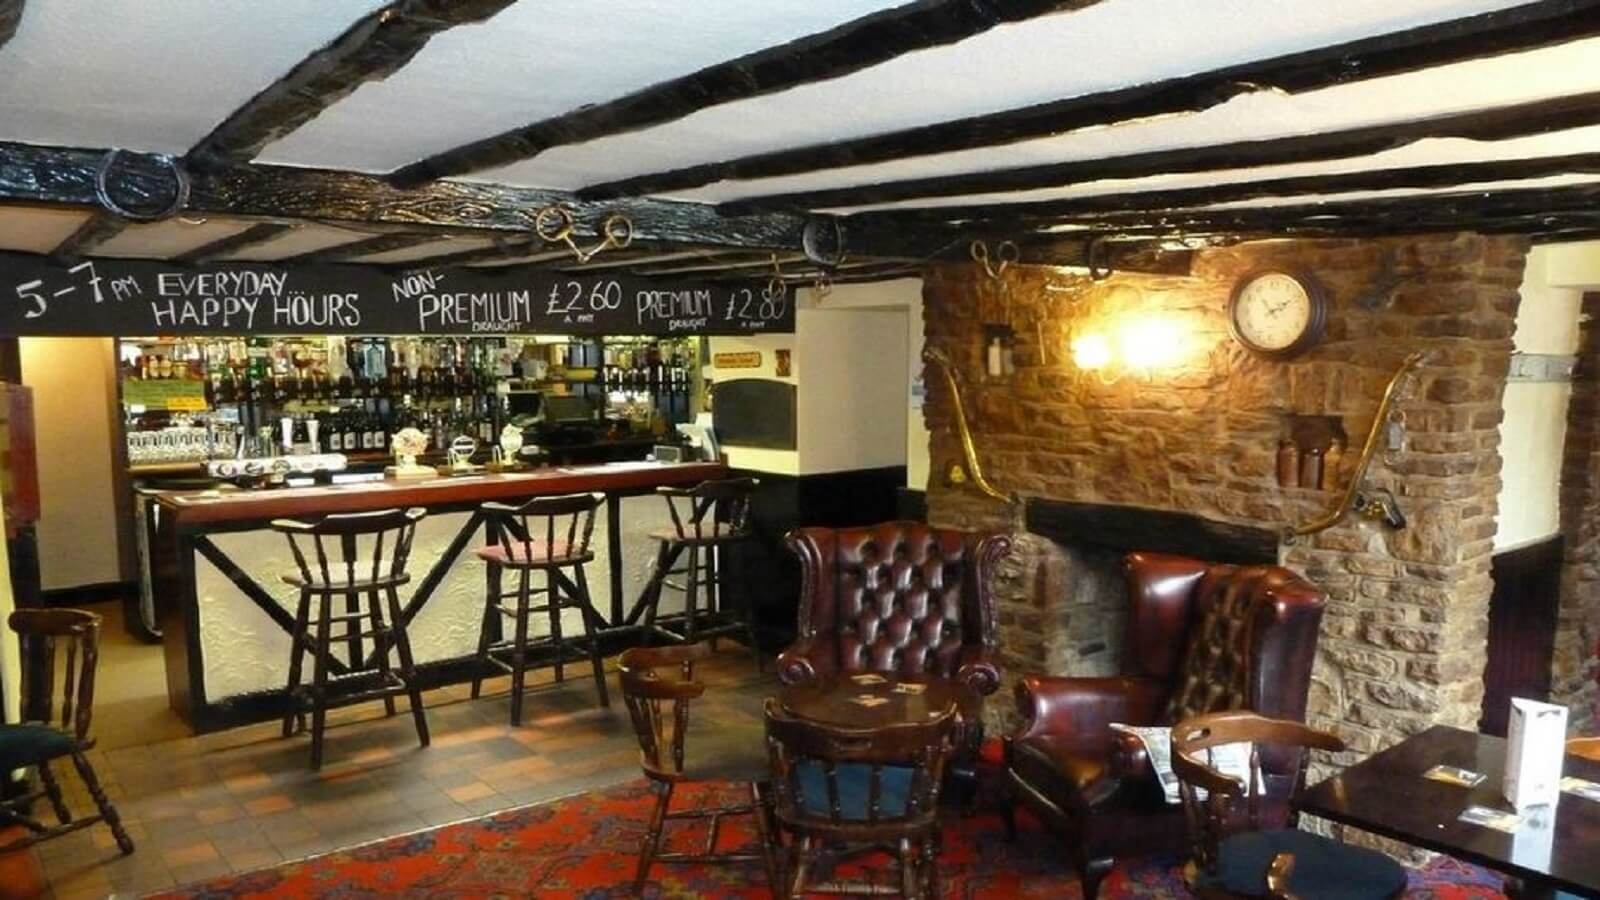 The Carpenters Arms